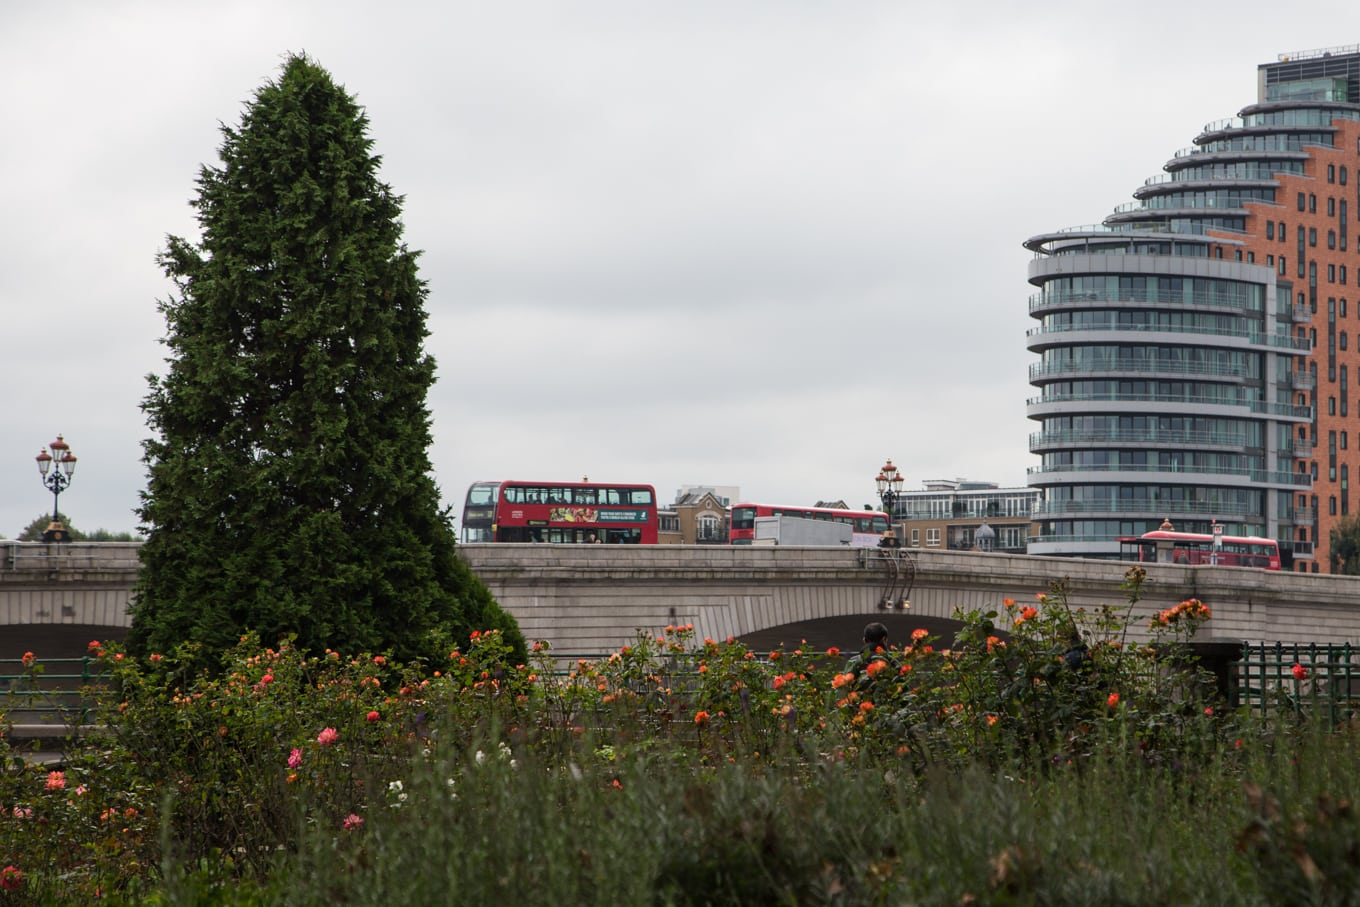 Photo of red London transportation buses passing over Putney Bridge, London, UK.